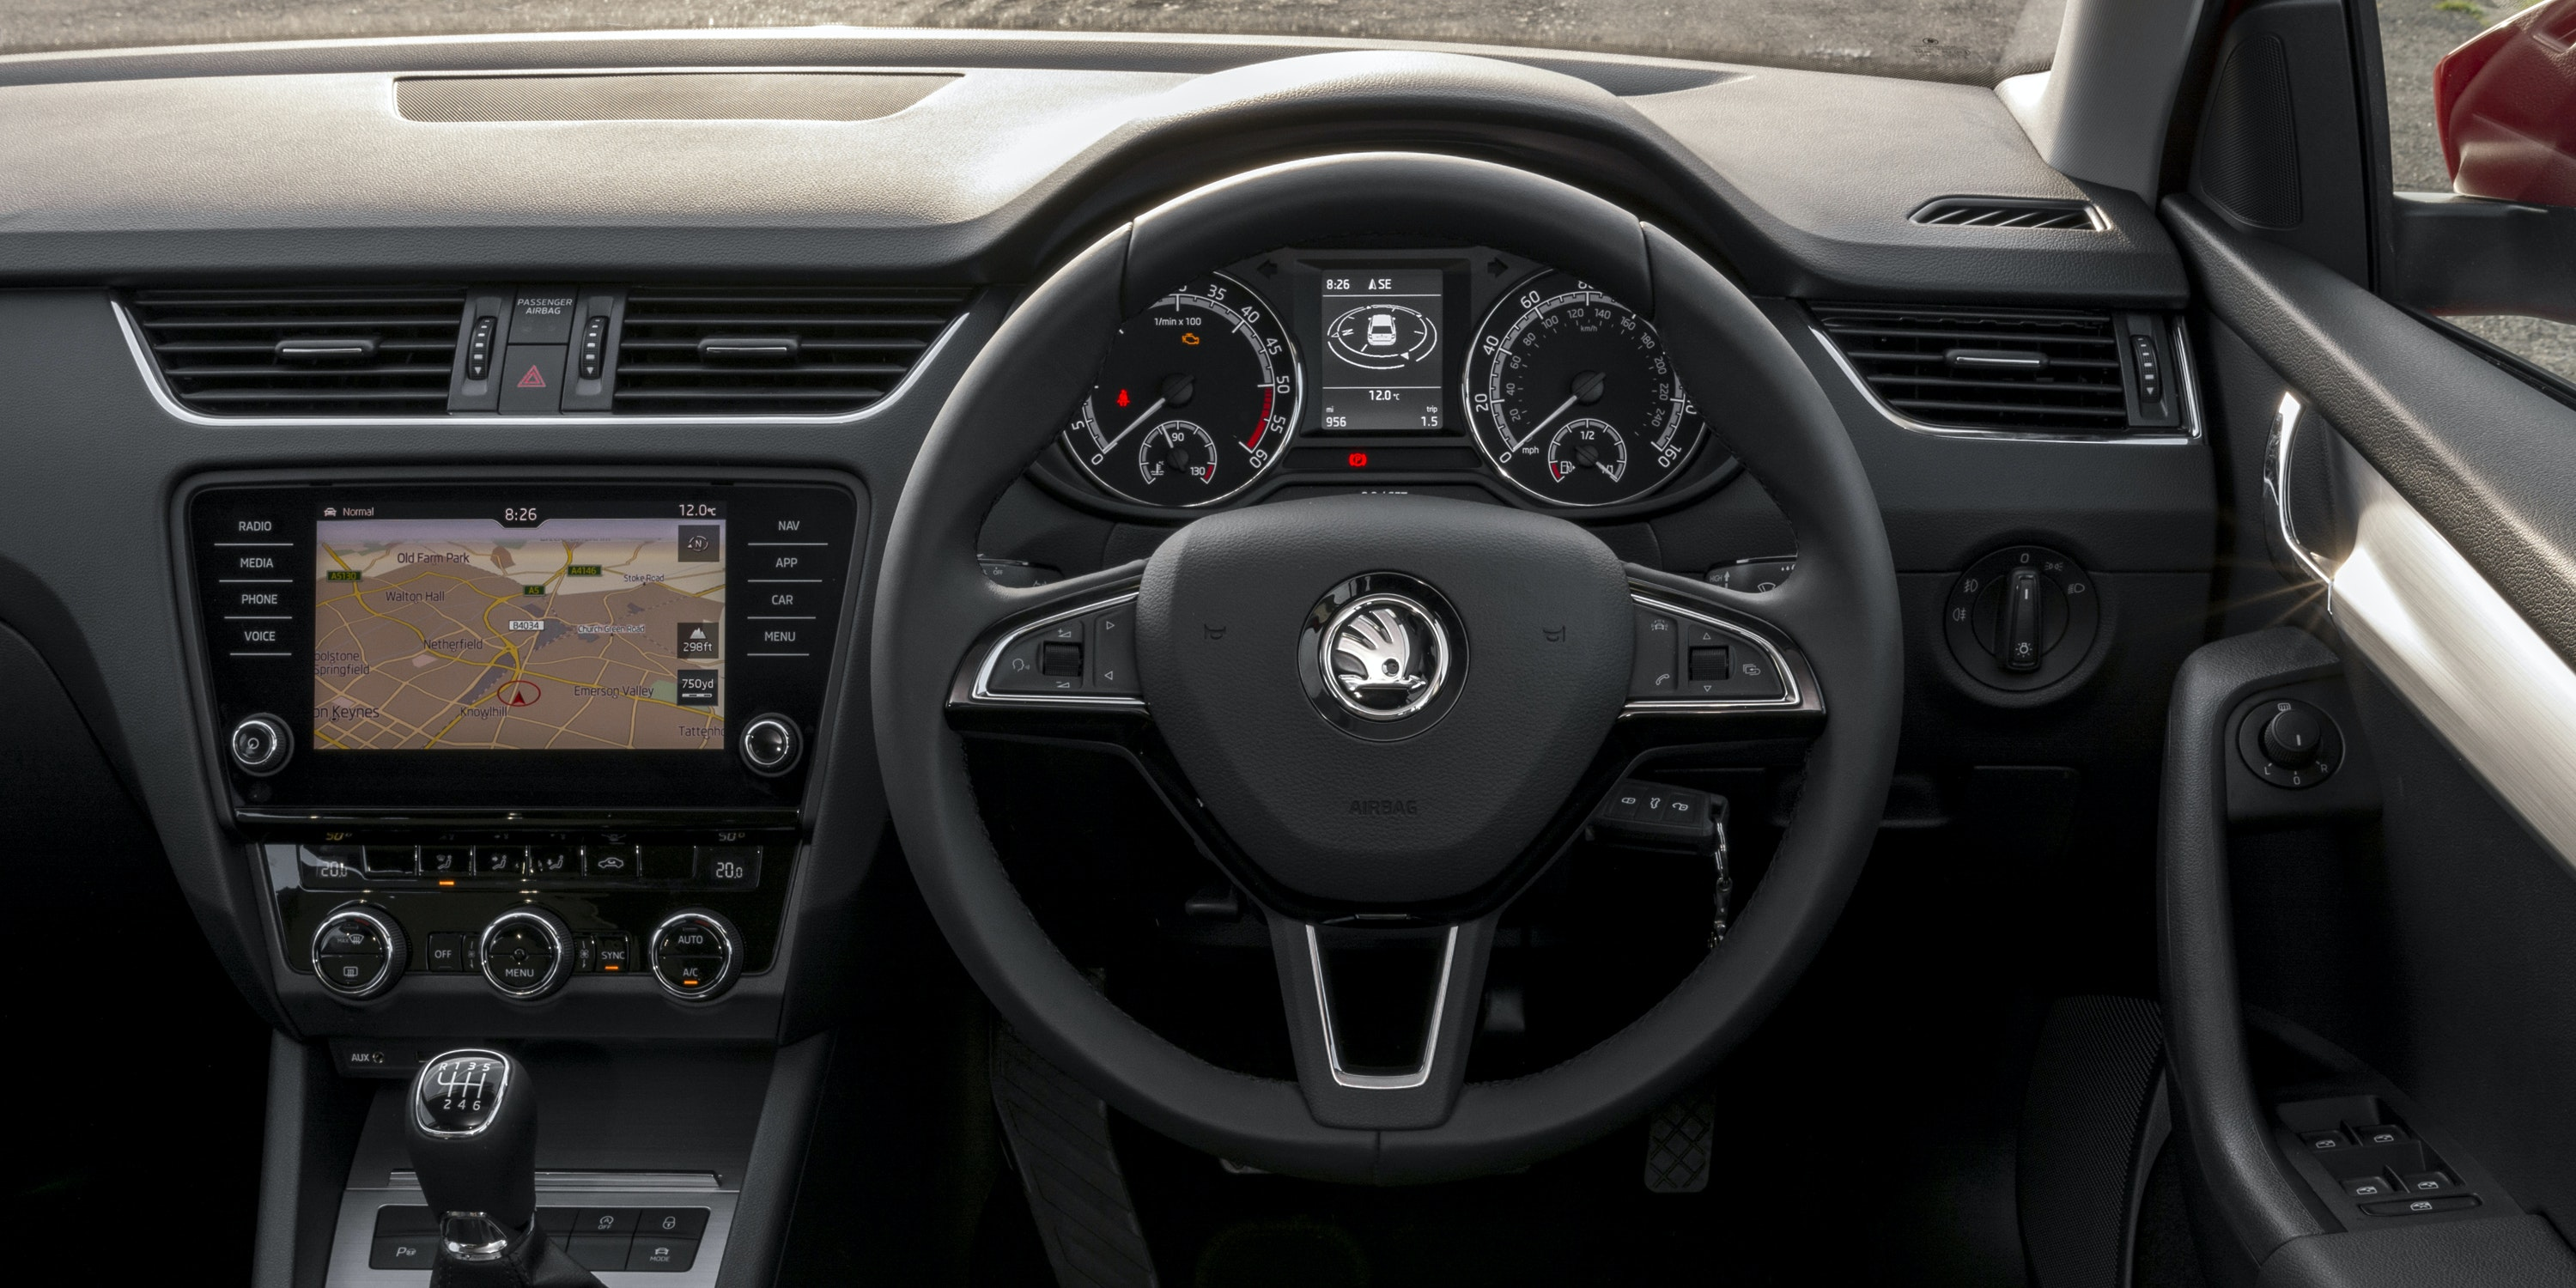 The Octavia's dashboard is well built and logically laid out